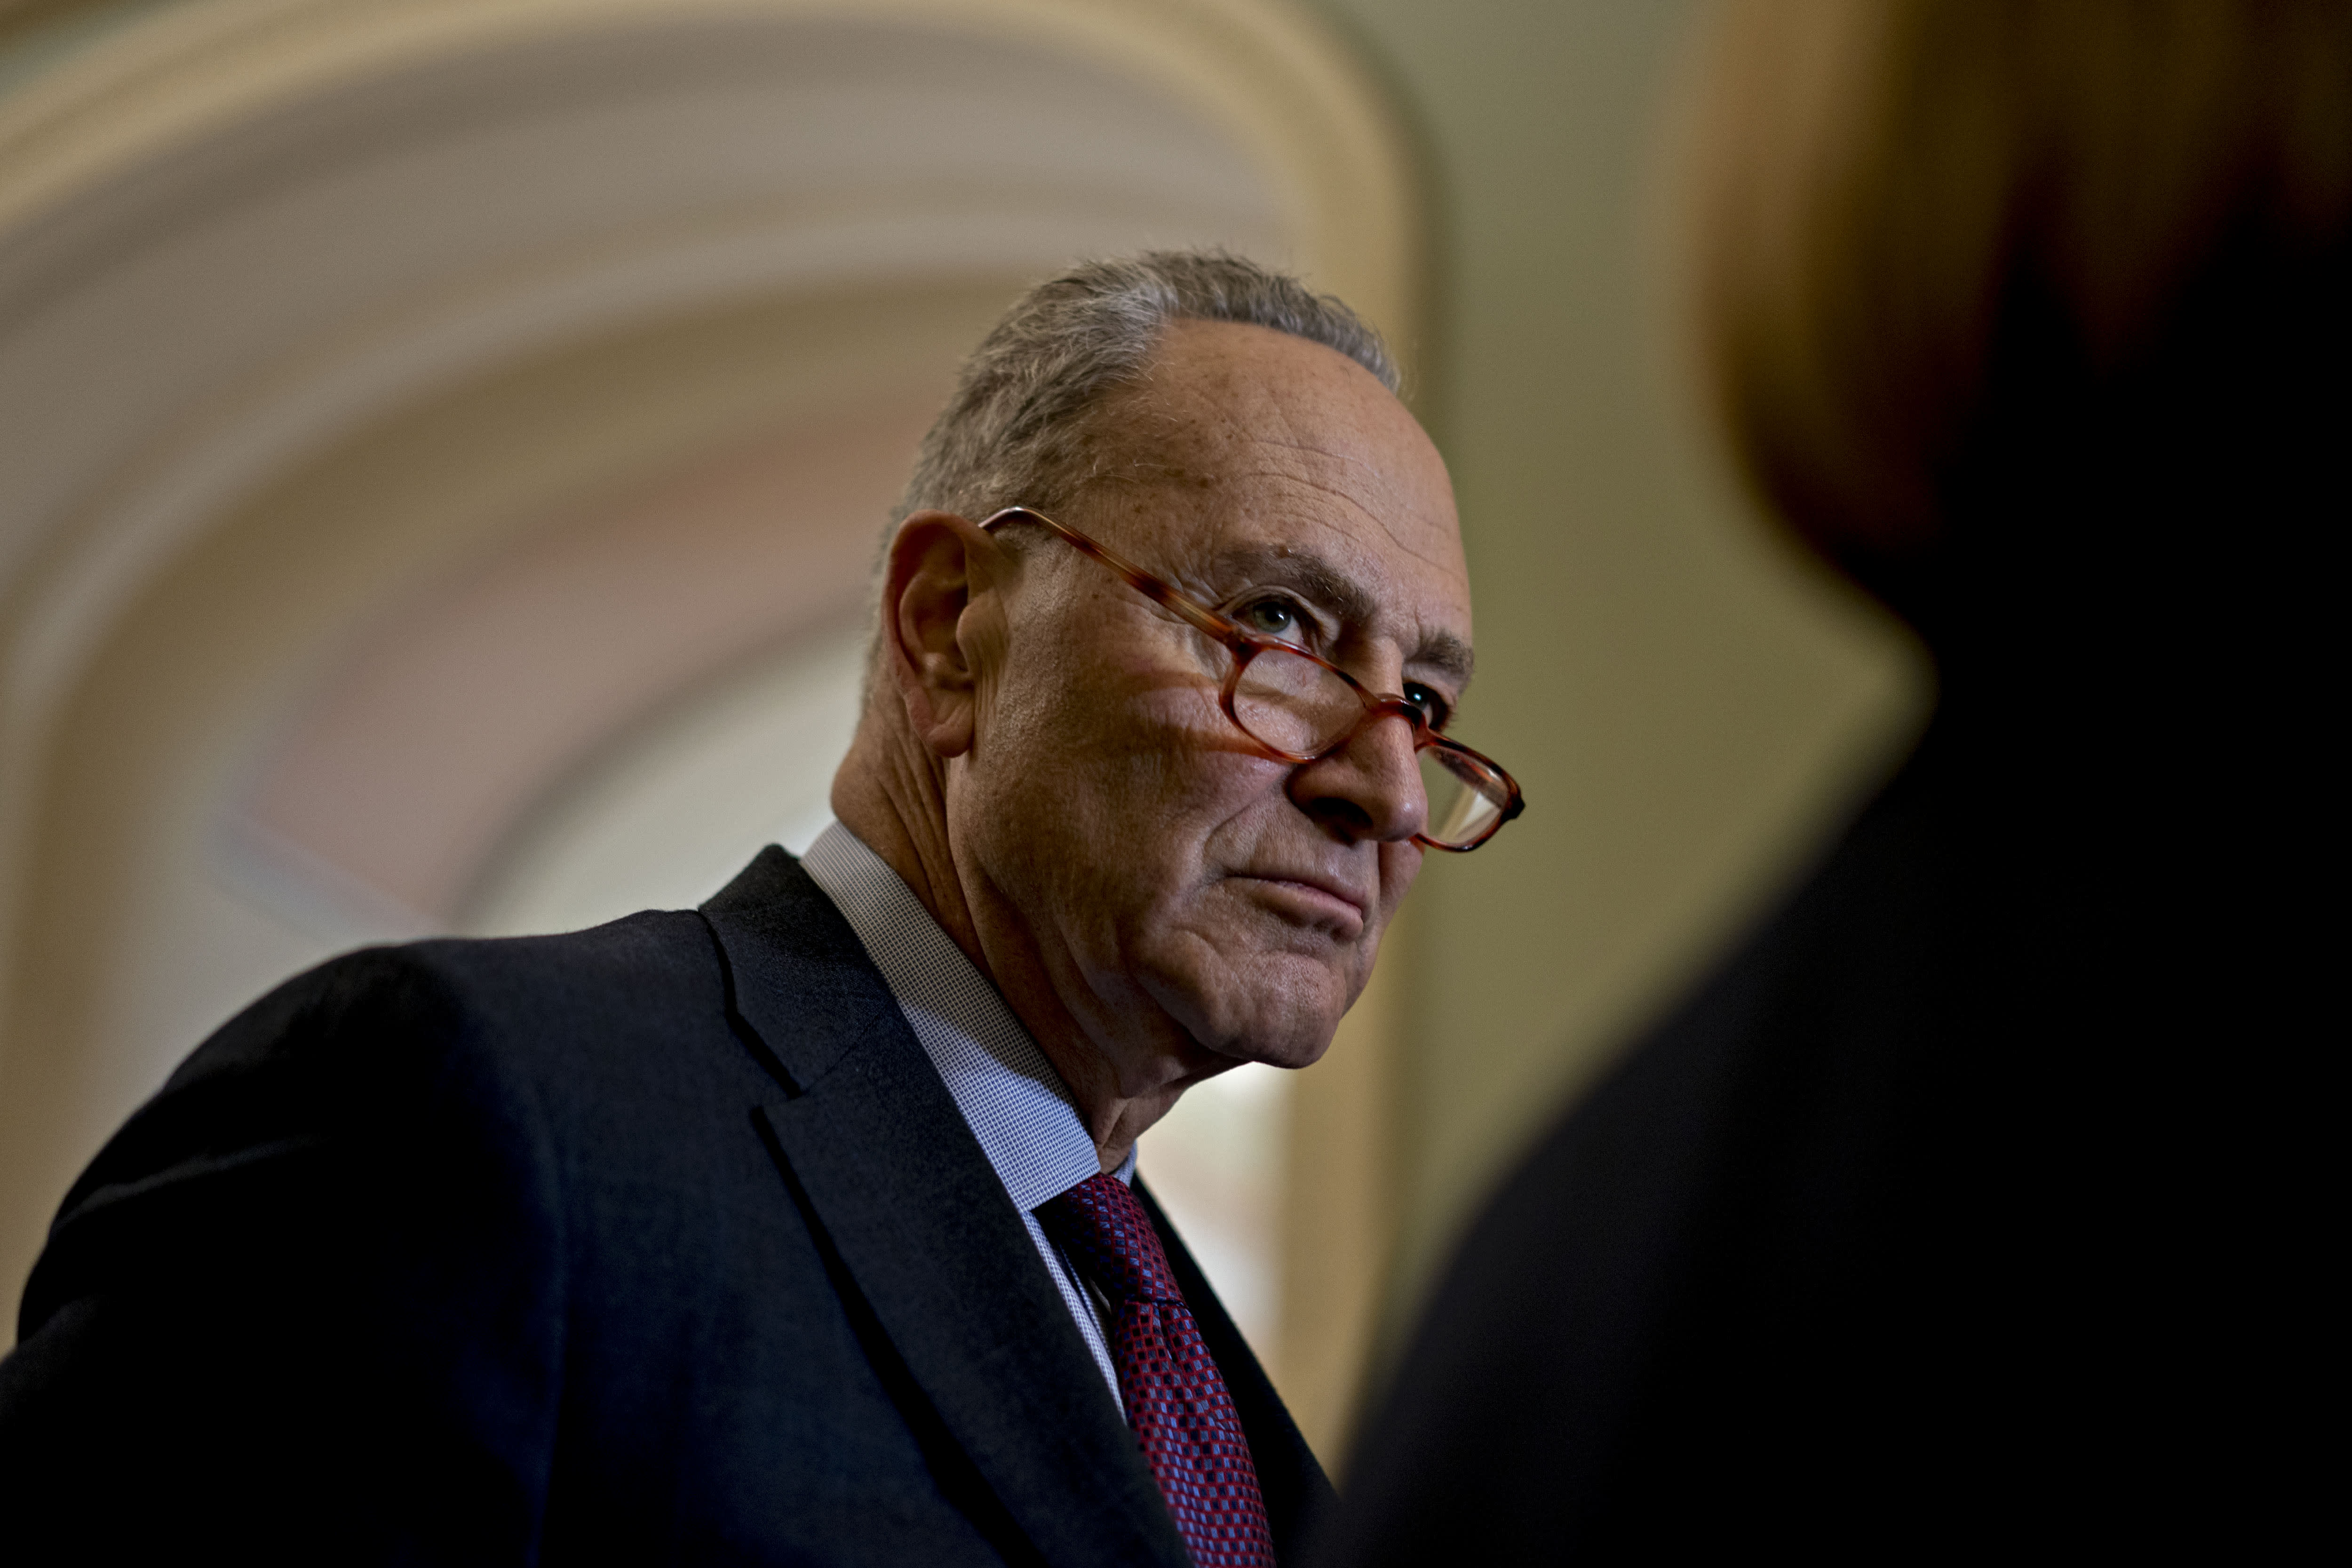 Senate Democrats will force another vote to end Trump's border emergency declaration